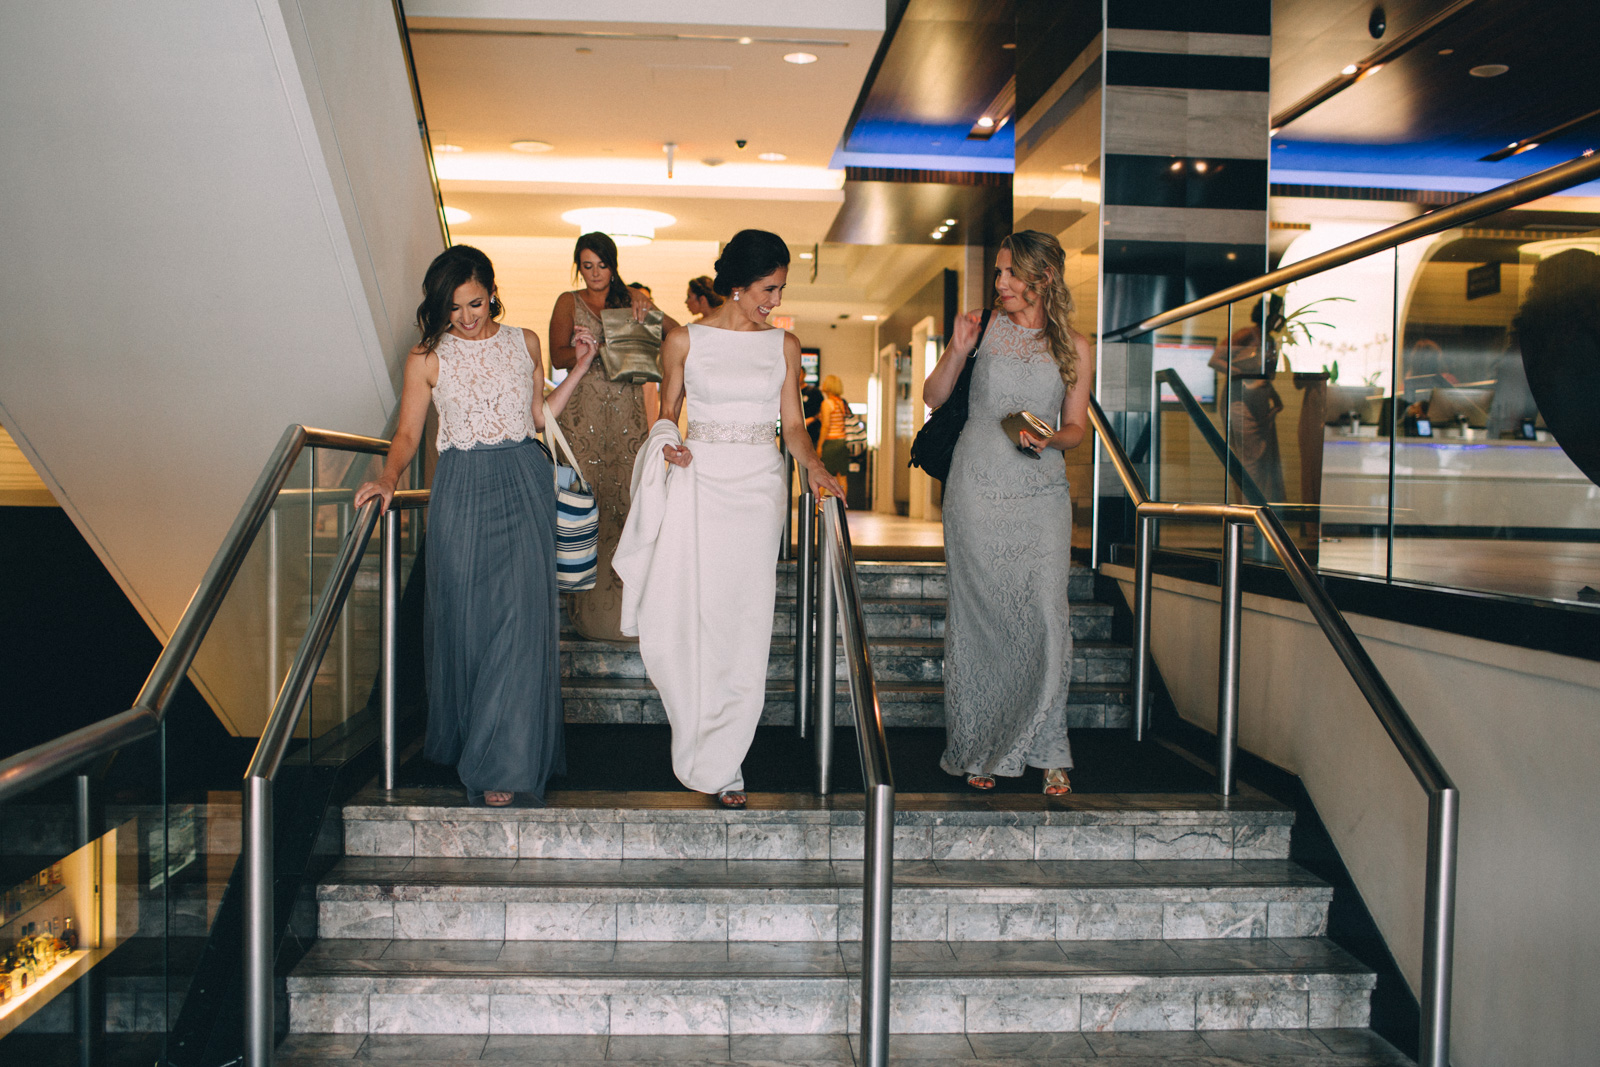 Malaparte-wedding-photography-Toronto-by-Sam-Wong-of-Visual-Cravings_22